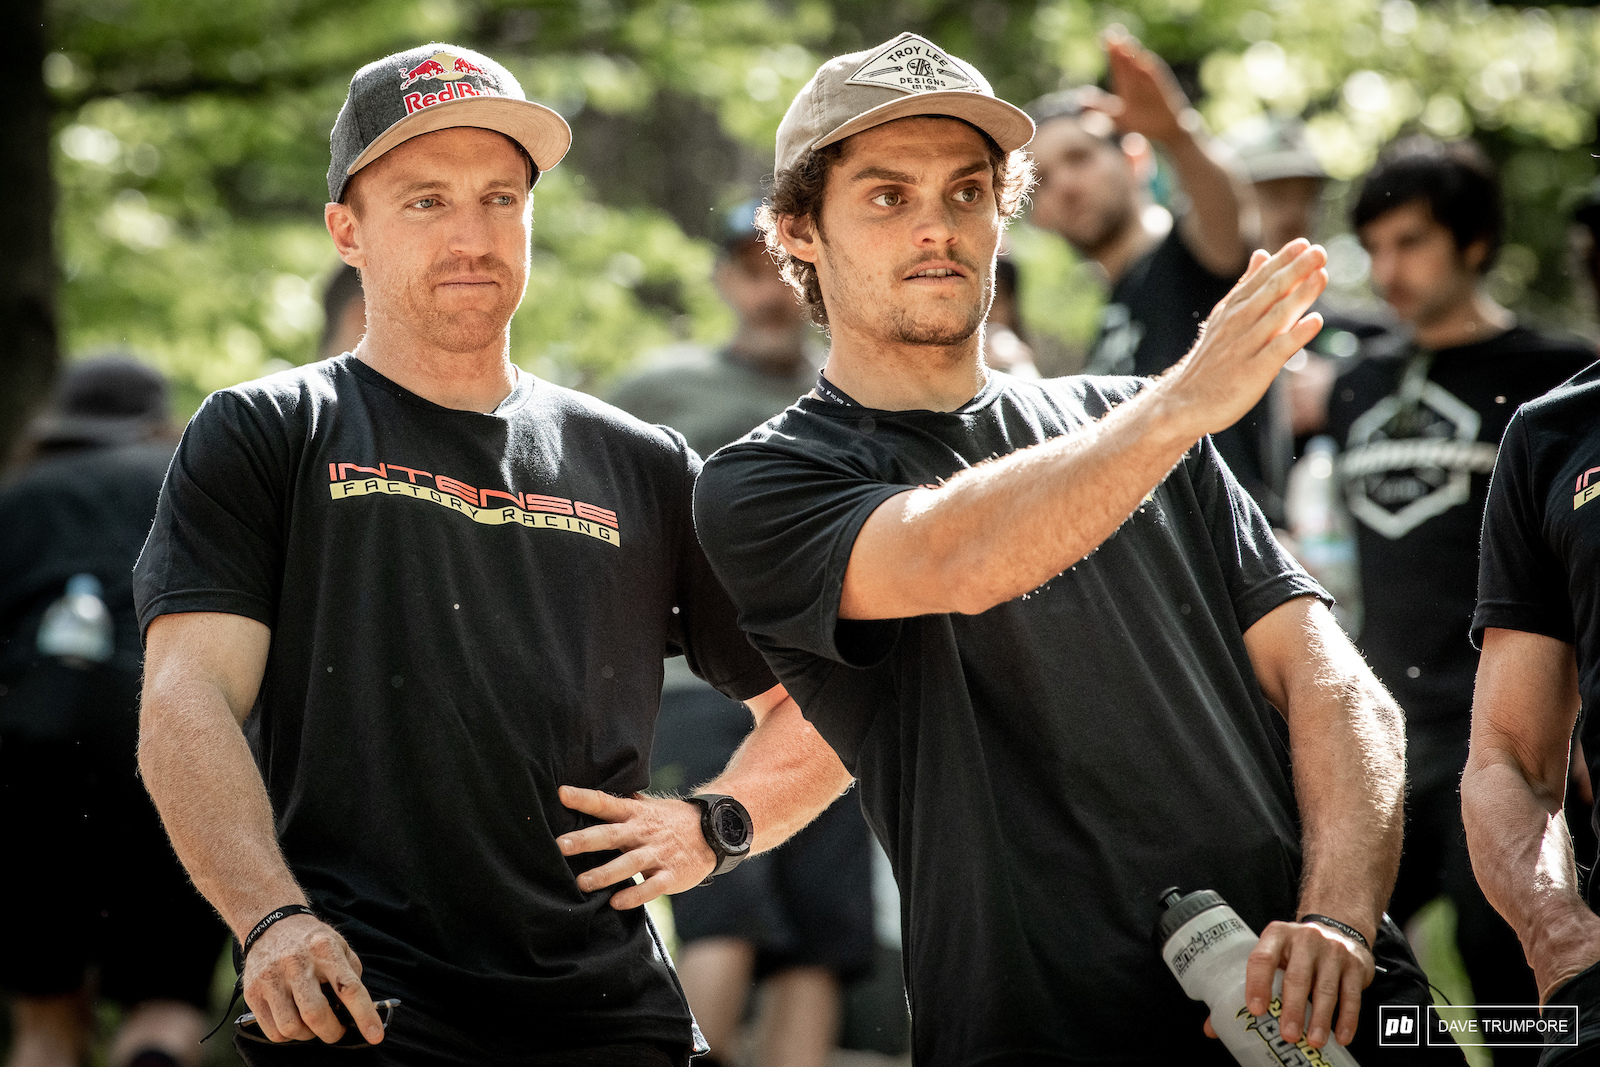 Aaron Gwin and his new teammate Jack Moir in the rock garden.